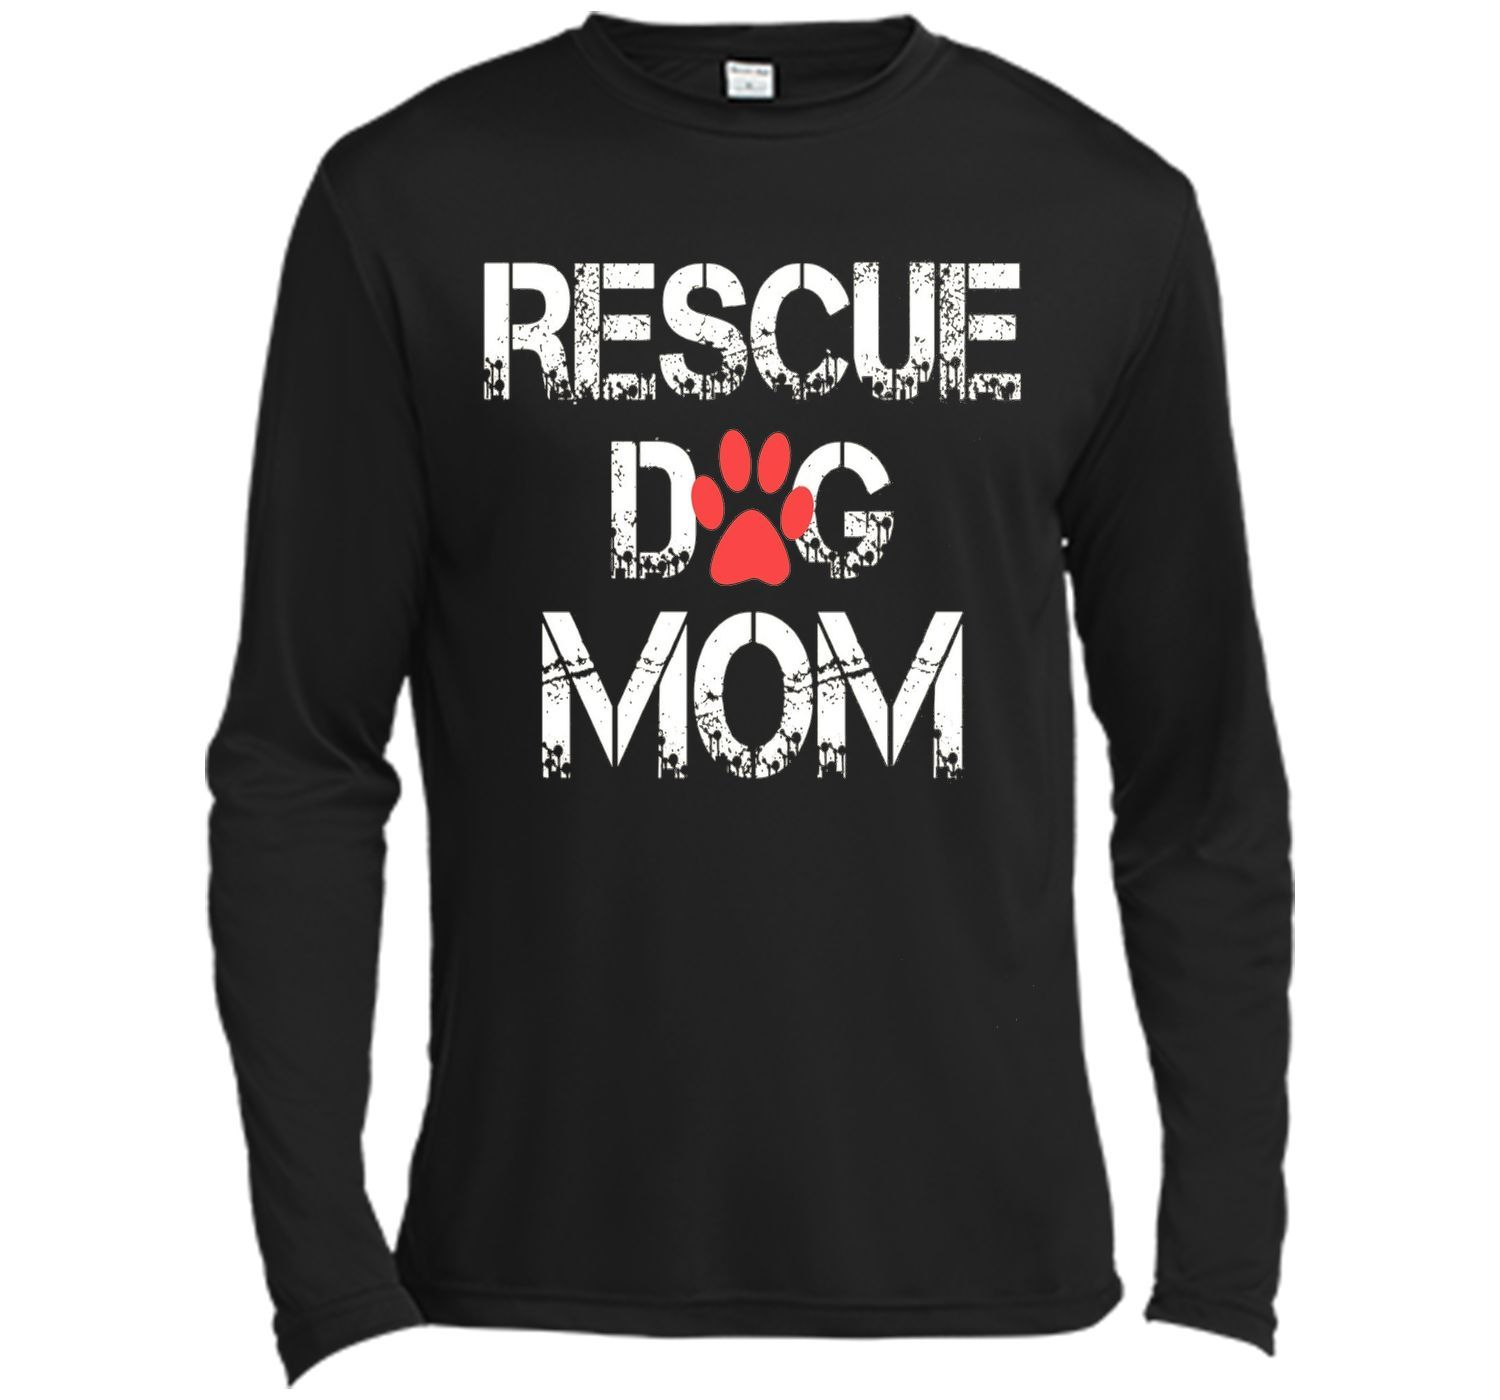 RESCUE DOG MOM Tshirt - mother's day